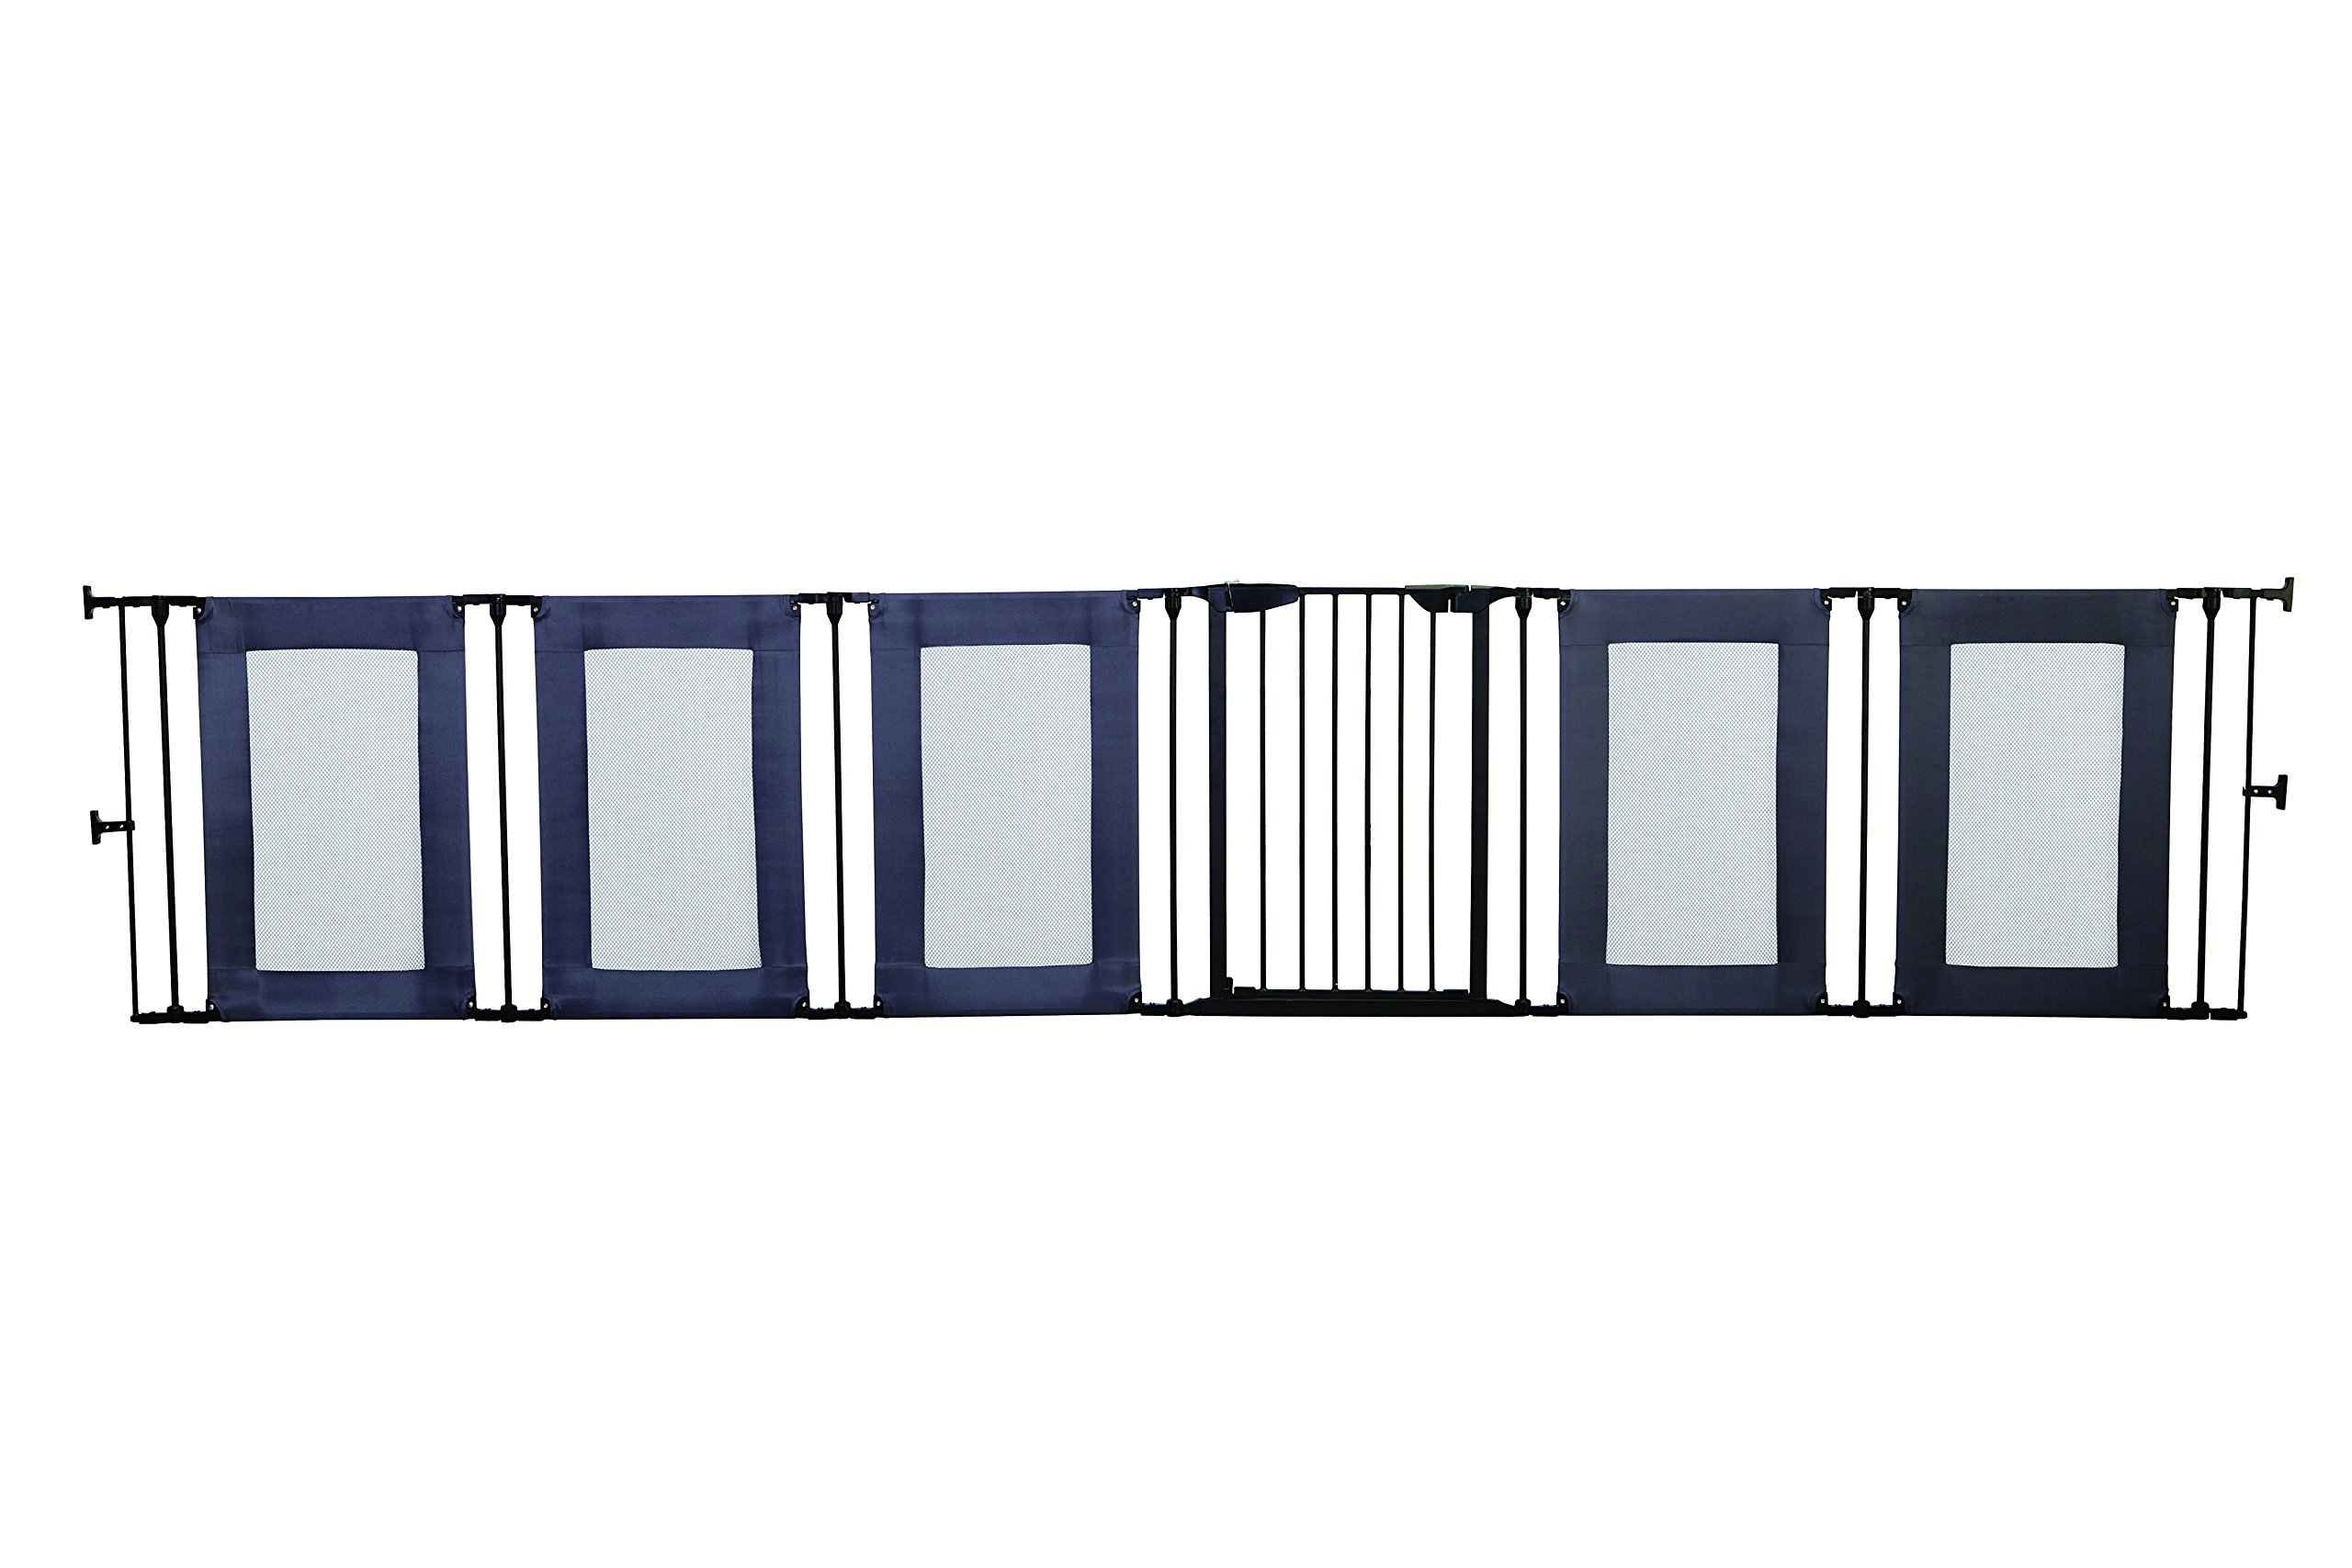 Dreambaby Brooklyn 3-in-1 Converta Dreambaby 6 modular panels including covenient walk-through gate Arrange panels to your specific layout Can be used as either a play-pen or extra-wide barrier gate 2